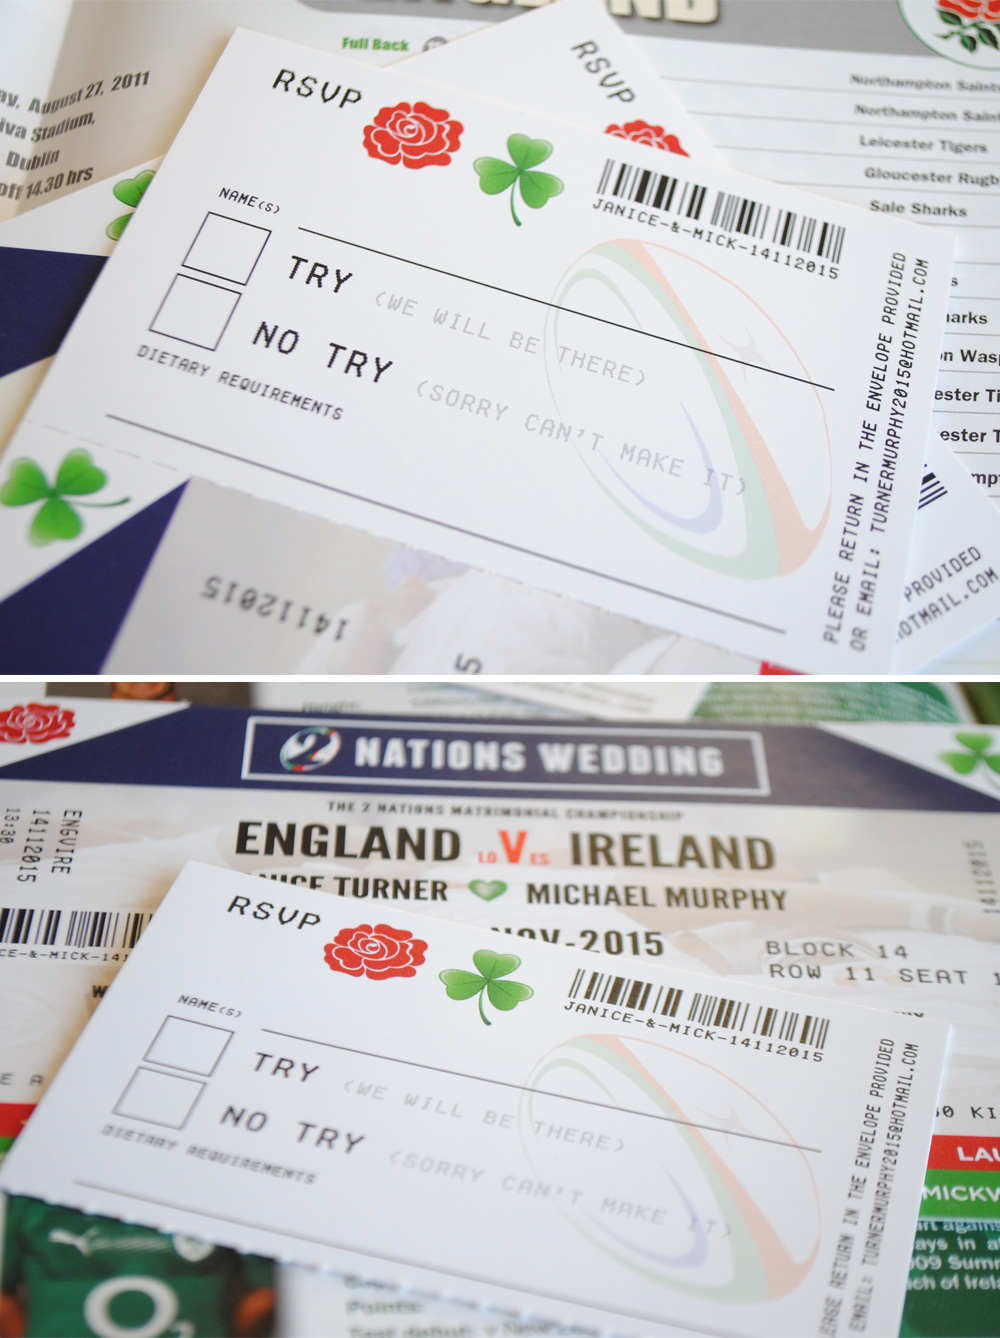 Ireland rugby wedding invitation